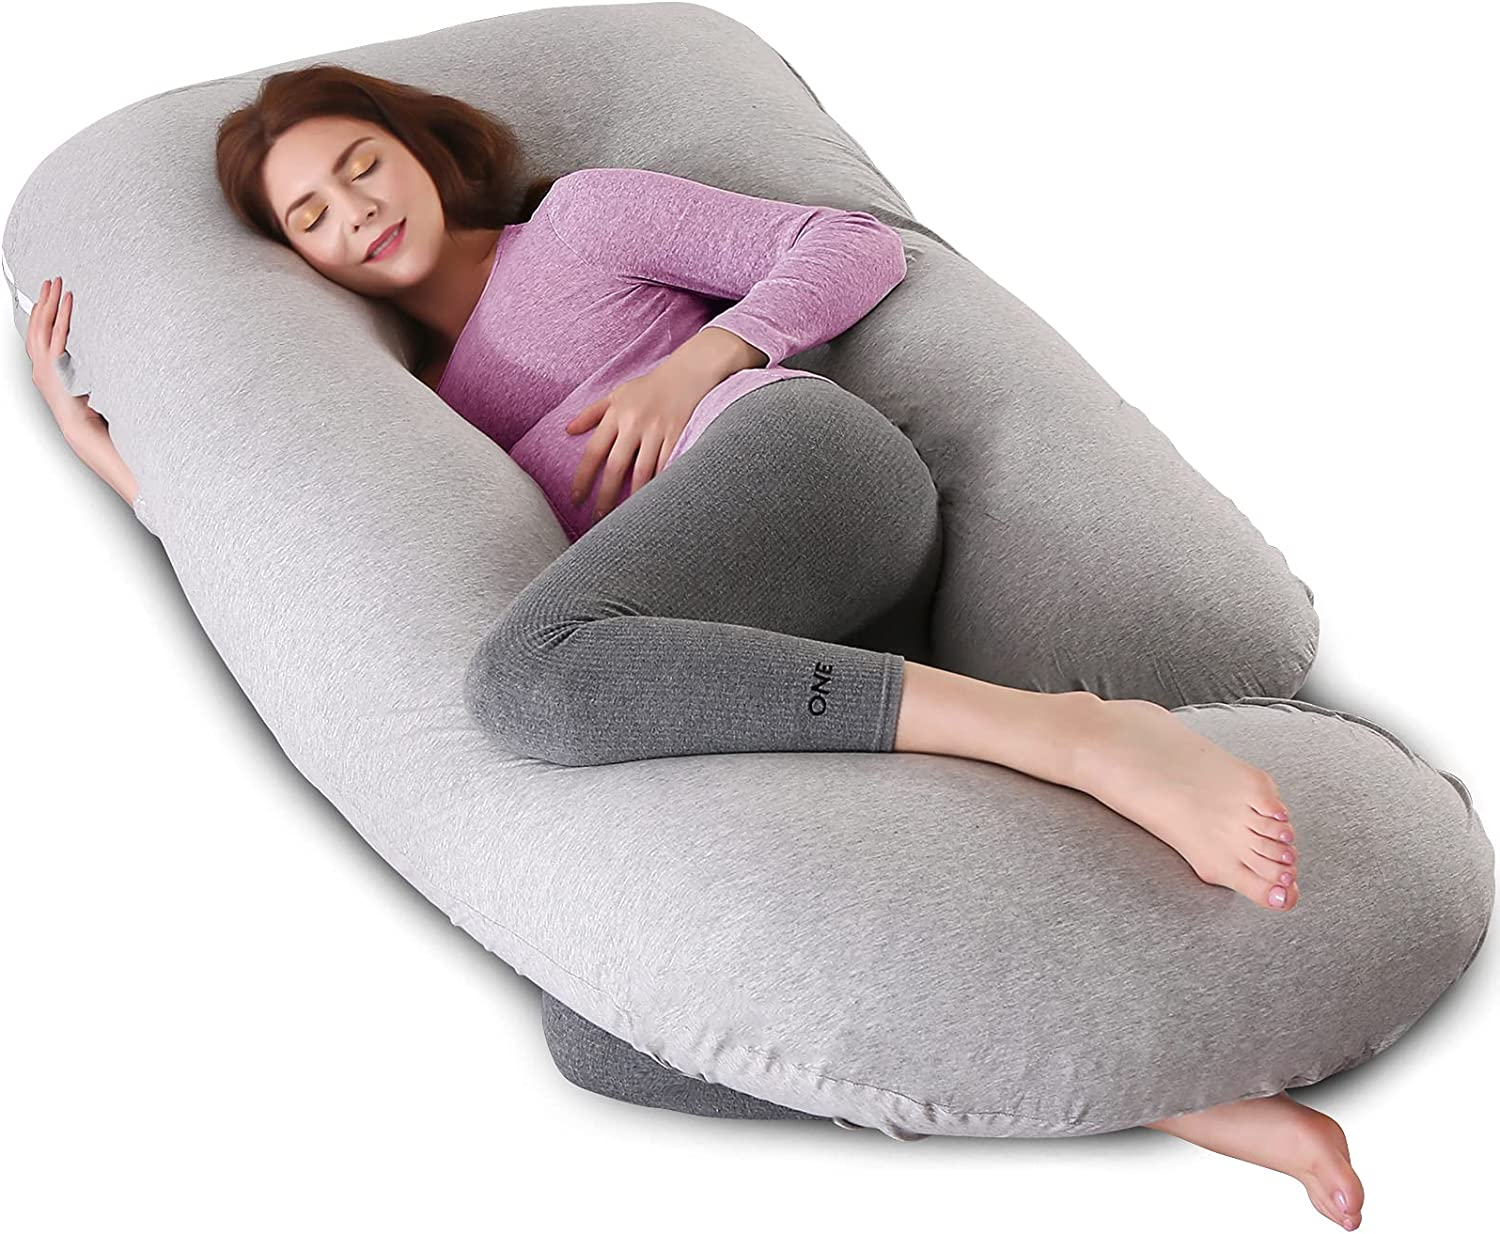 Pregnancy Pillow U Shaped Full Body Pillow with Washable Jersey Cover - 57 inches Maternity Pillow for Pregnant Women - Support Head, Back, Shoulder, Hips, Legs and Belly (Gray)